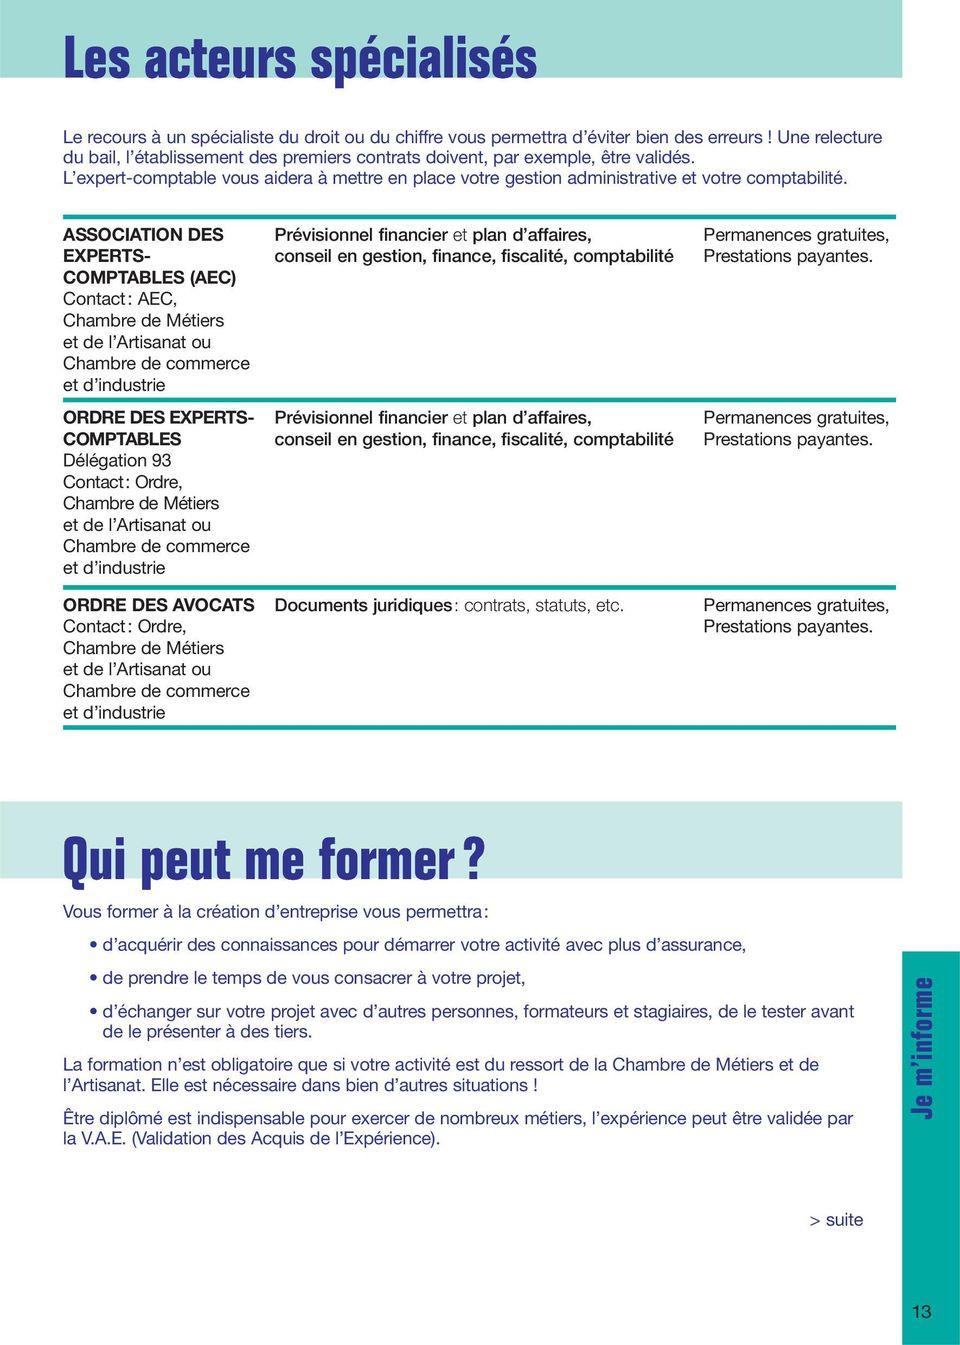 ASSOCIATION DES Prévisionnel financier et plan d affaires, Permanences gratuites, EXPERTS- conseil en gestion, finance, fiscalité, comptabilité Prestations payantes.